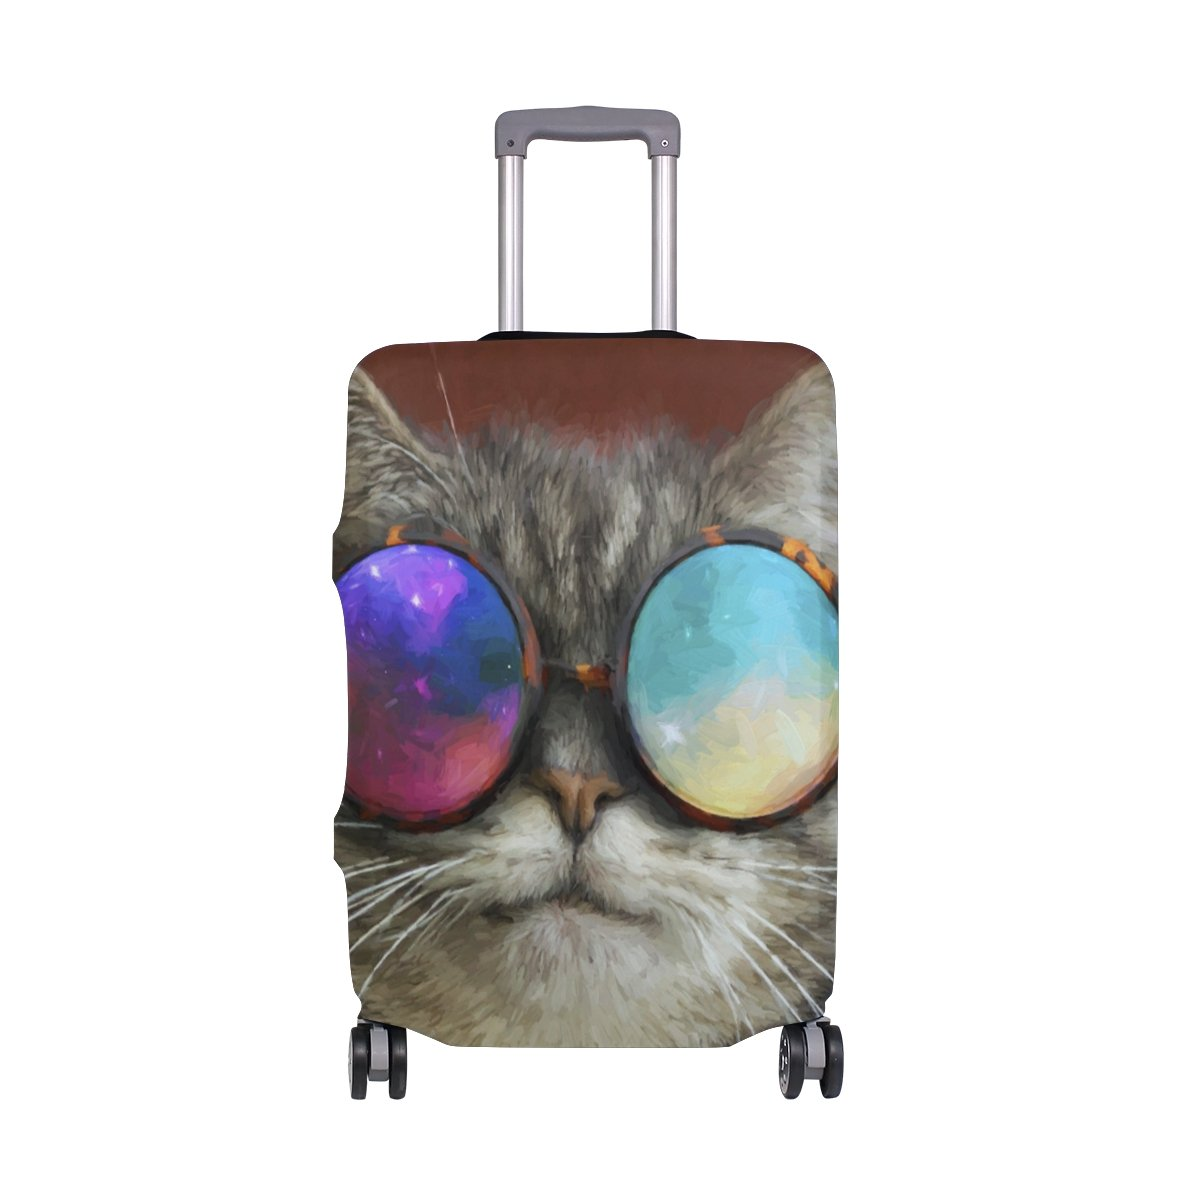 Glasses Cool Cat Travel Luggage Cover Stretchable Pulling Cloth Suitcase Protector Fits 29-32 Inches Luggage by Ouraiie